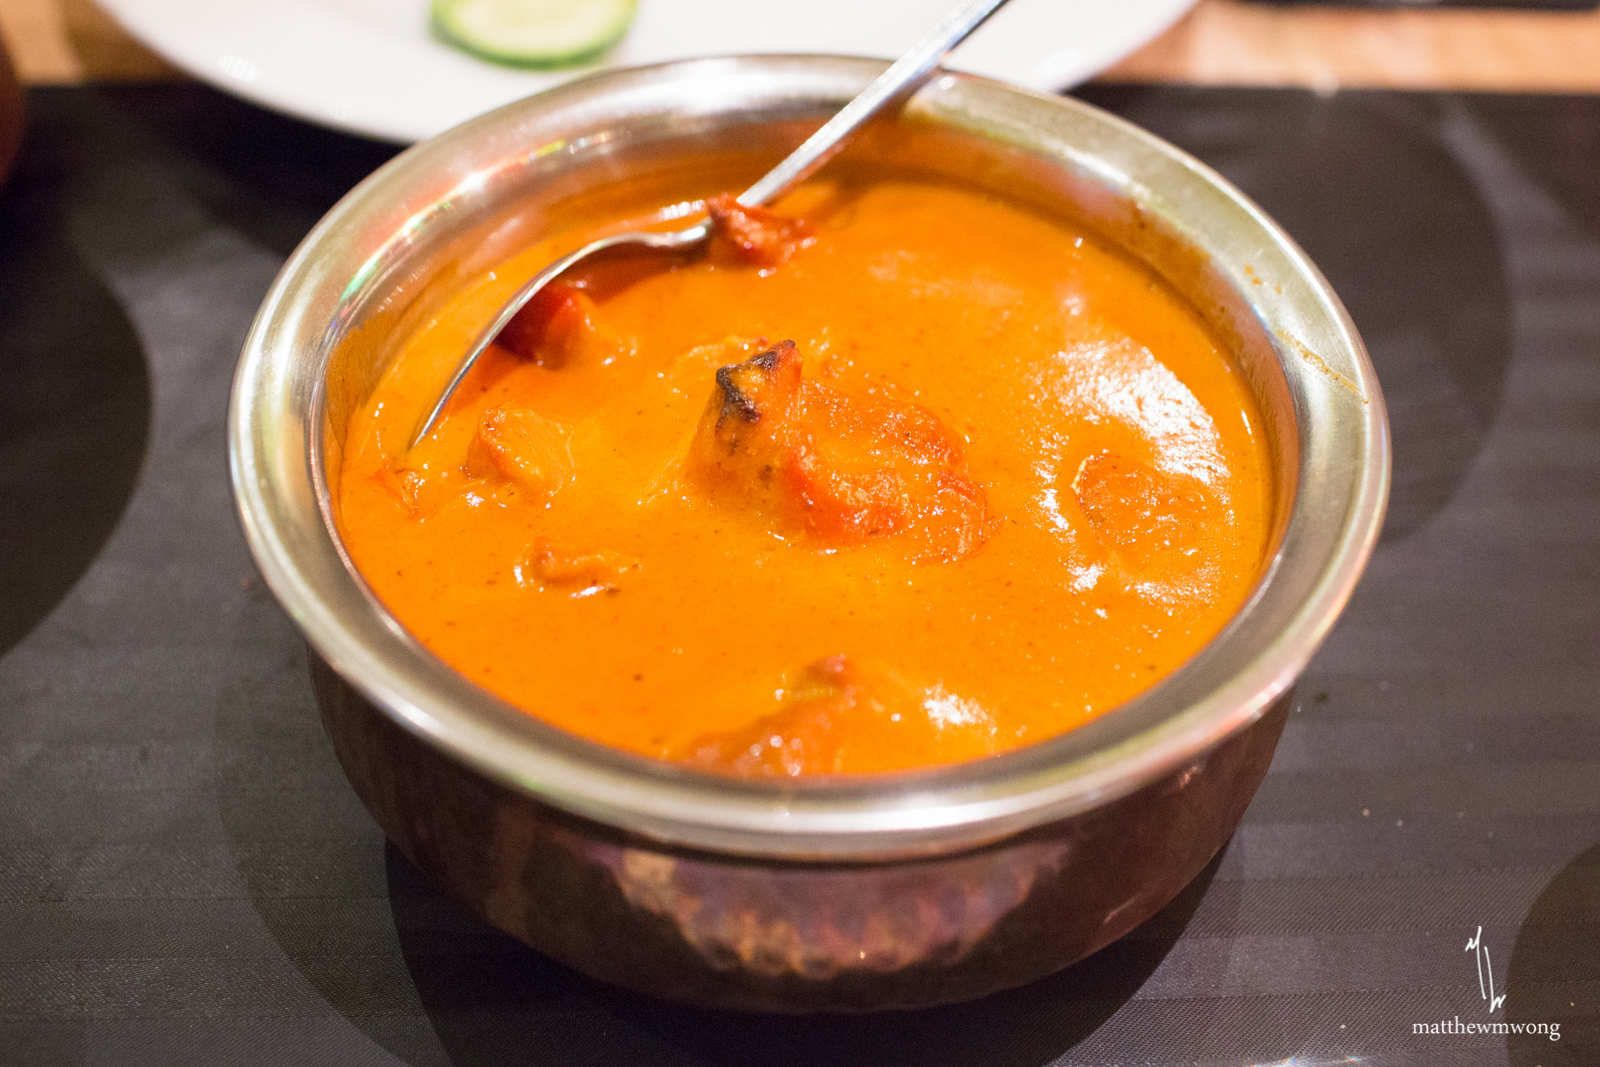 Butter Chicken, chicken cooked in tomato and creamy sauce